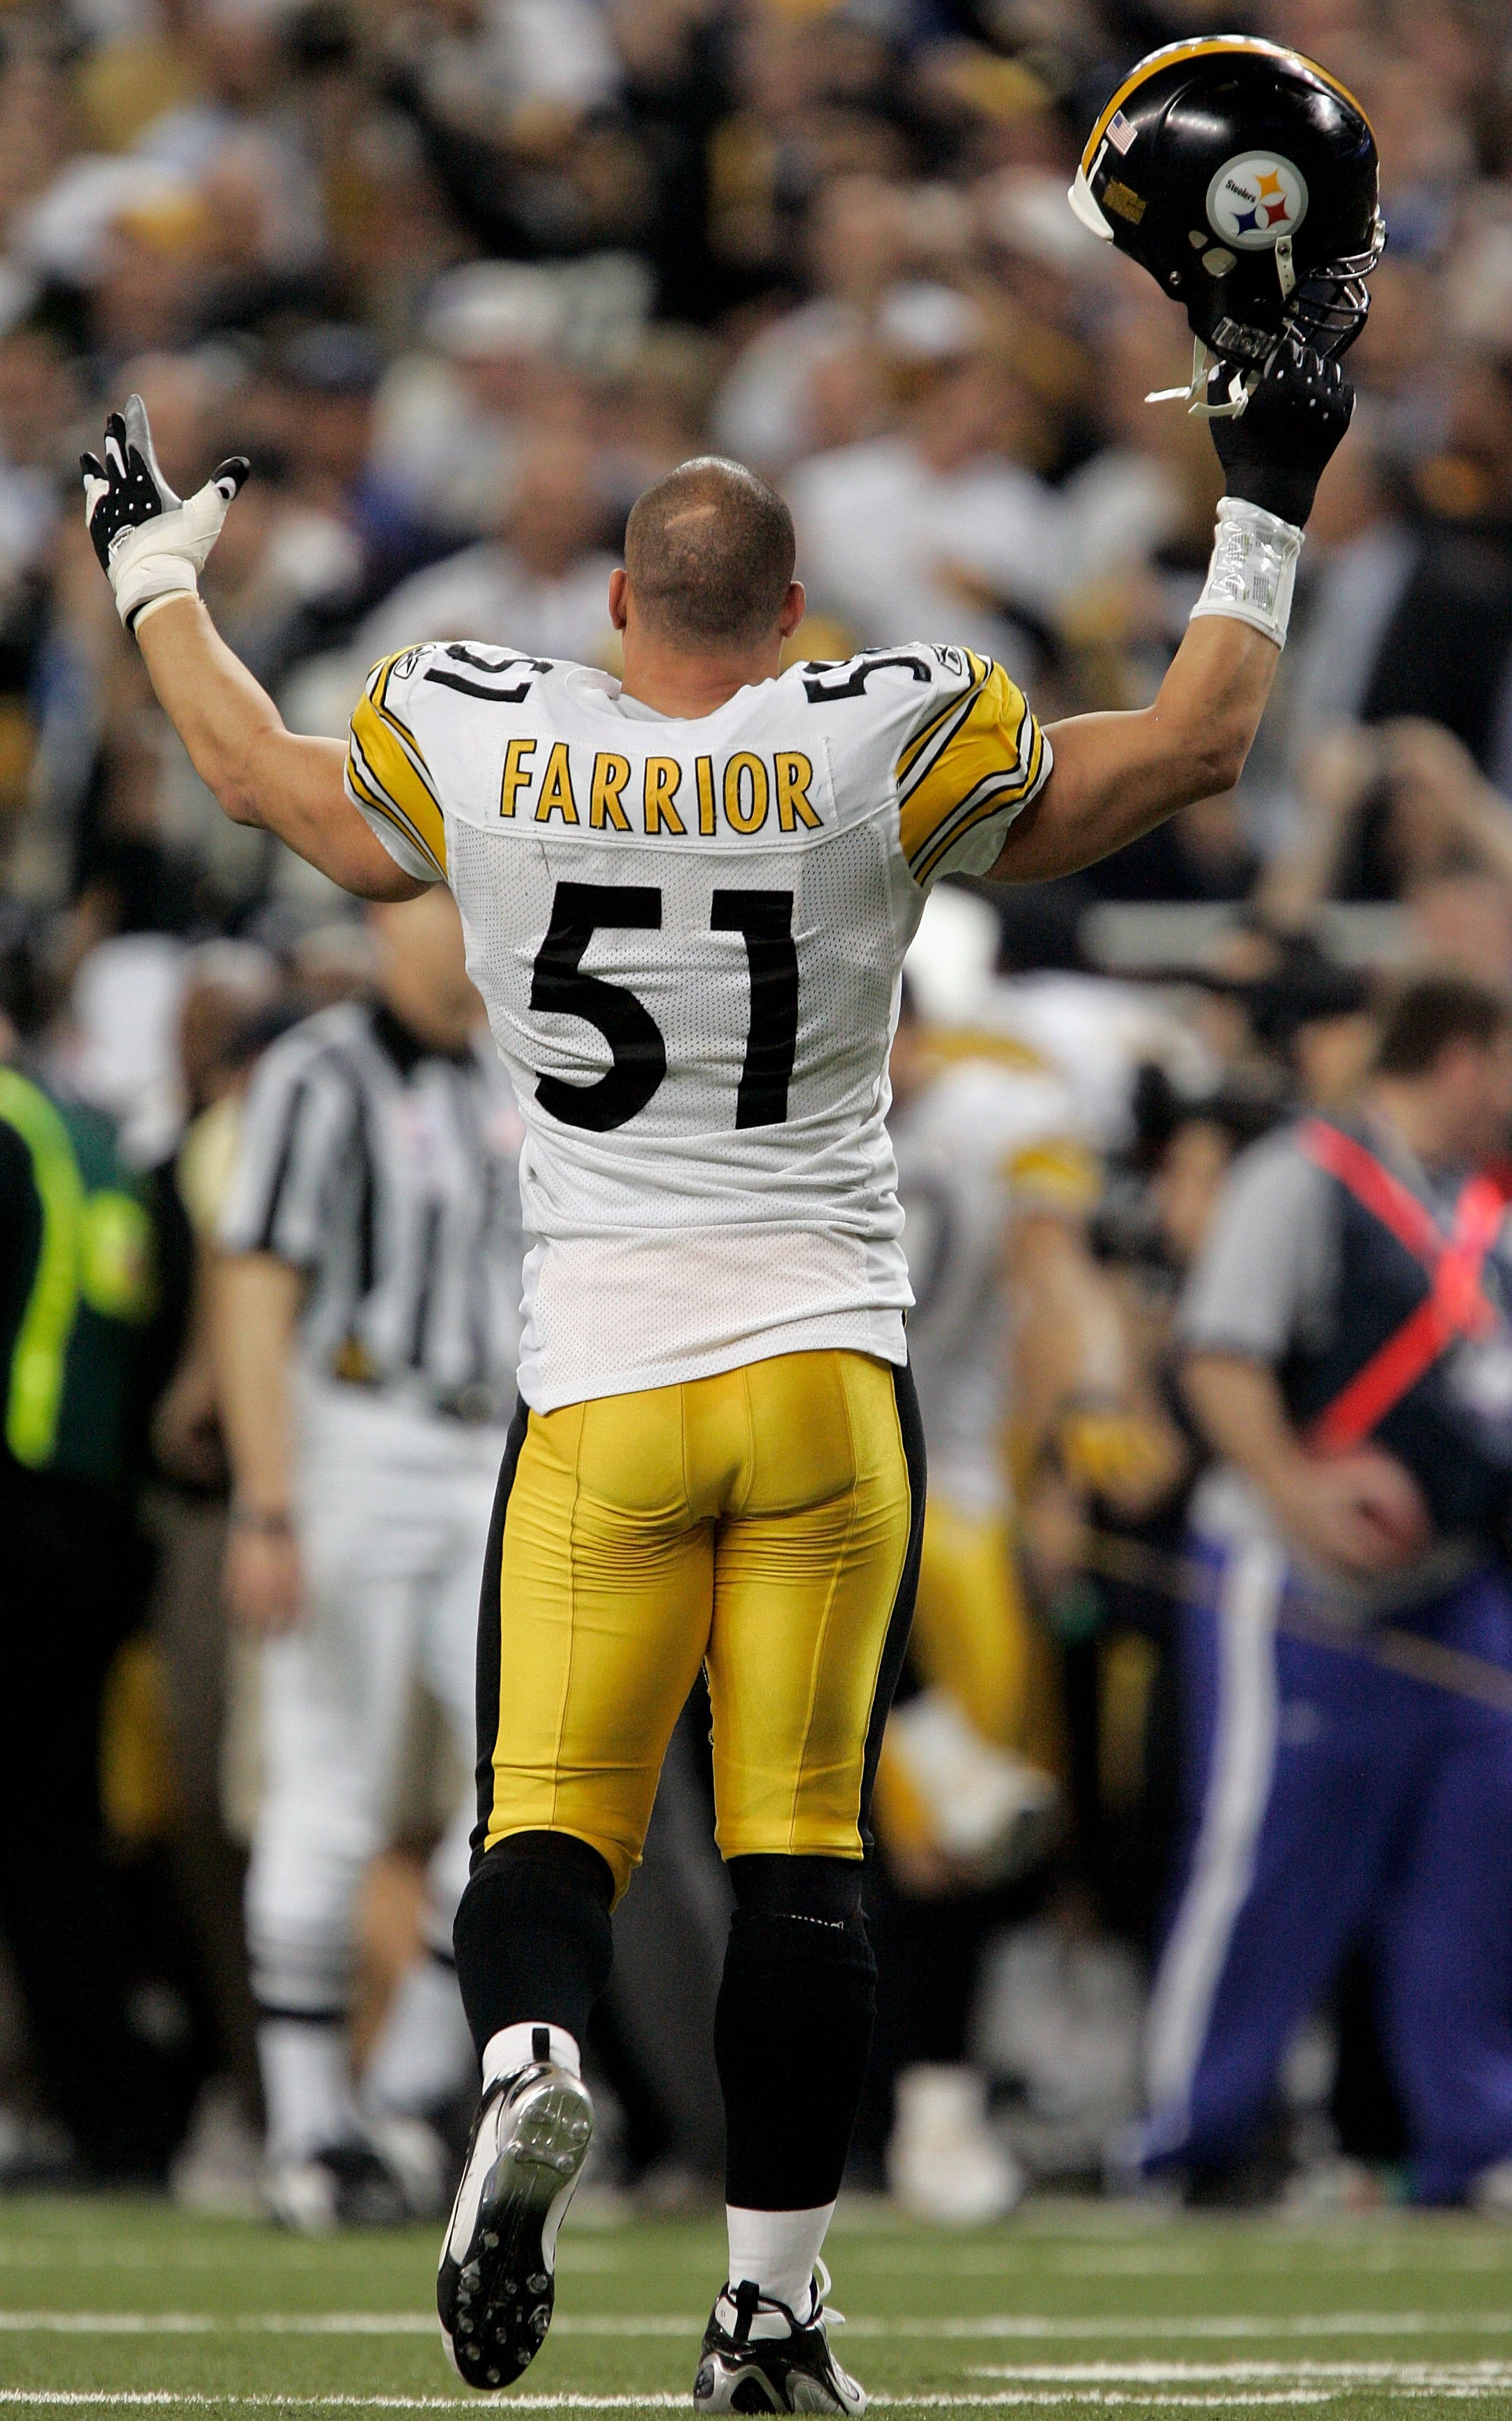 a58072249 James Farrior is arguably the best veteran free agent signing in Steelers  history. Viewed as somewhat of a bust by the NY Jets